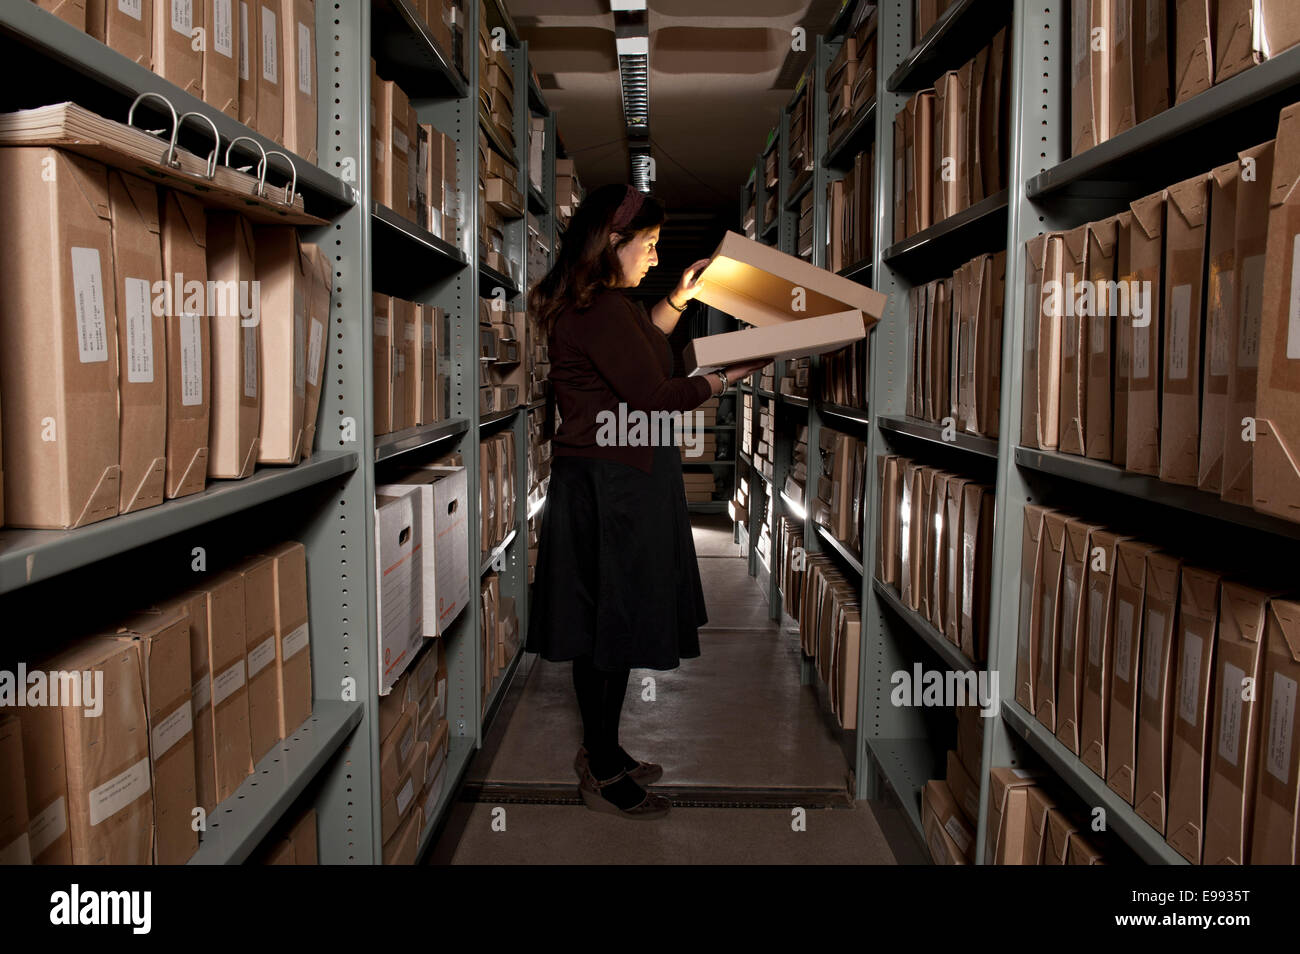 female member of staff at the BFI archive with storage shelves filled with archival boxes holding all kinds of film - Stock Image